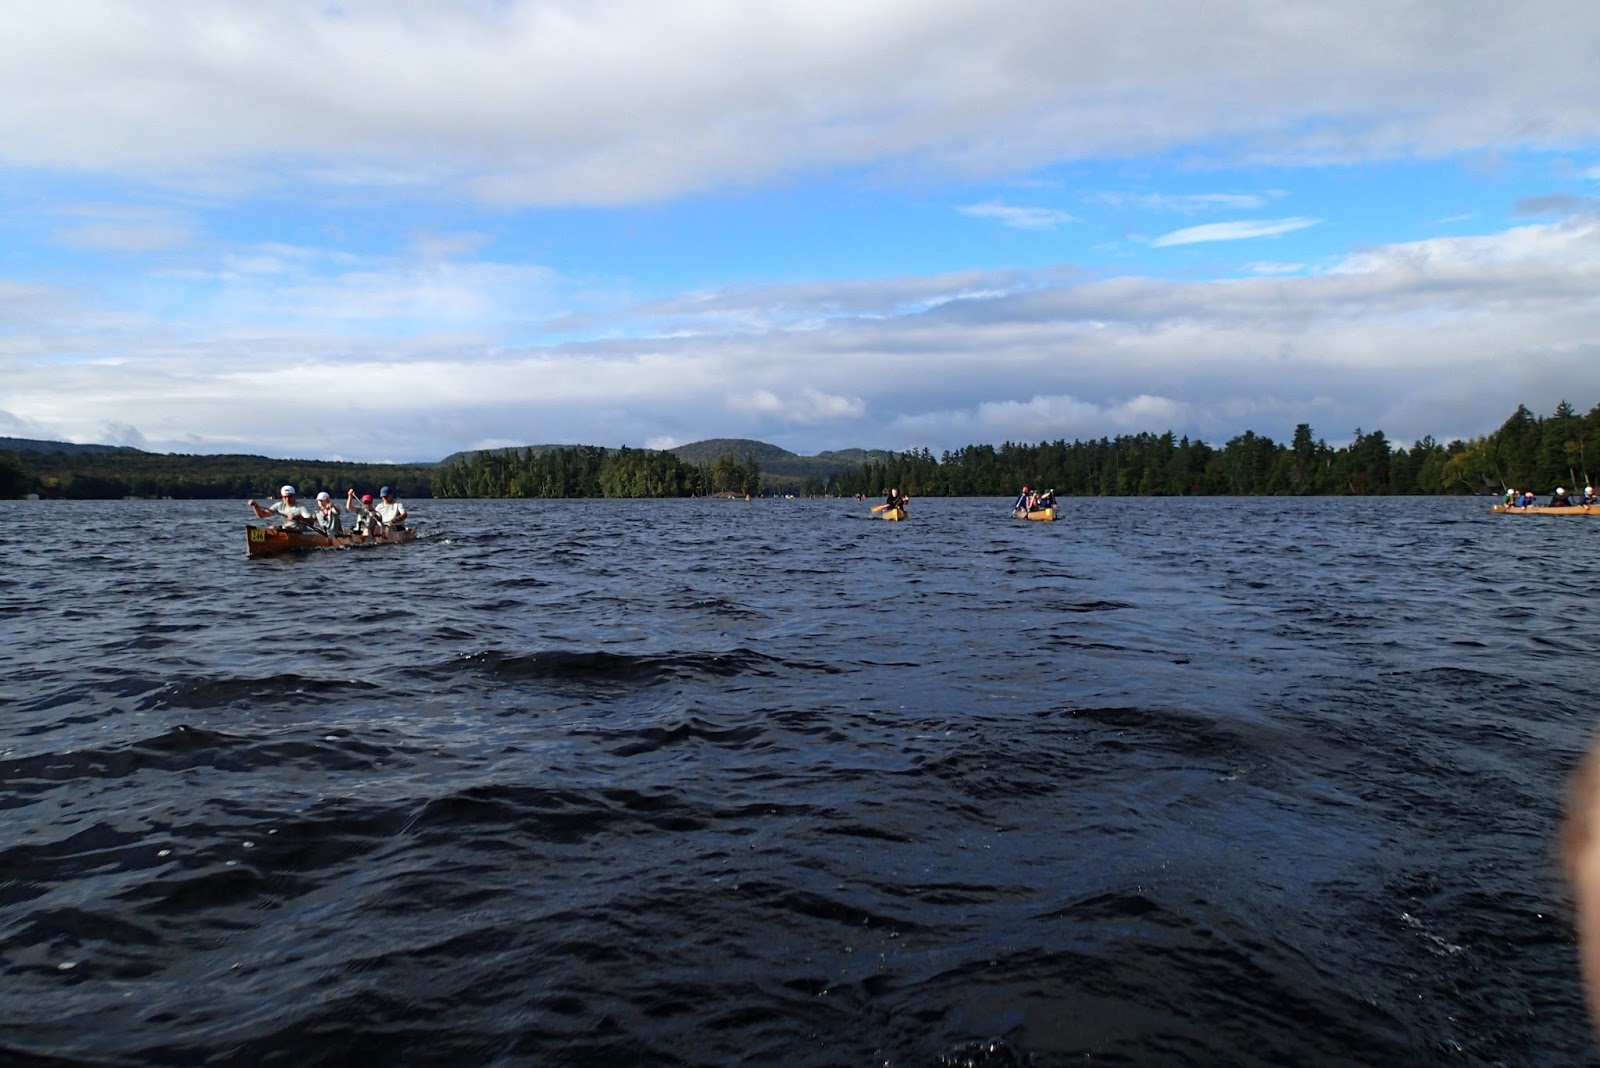 the first segment of the race crosses several small lakes connected by well marked channels at the end of fifth lake we encountered our first portage at